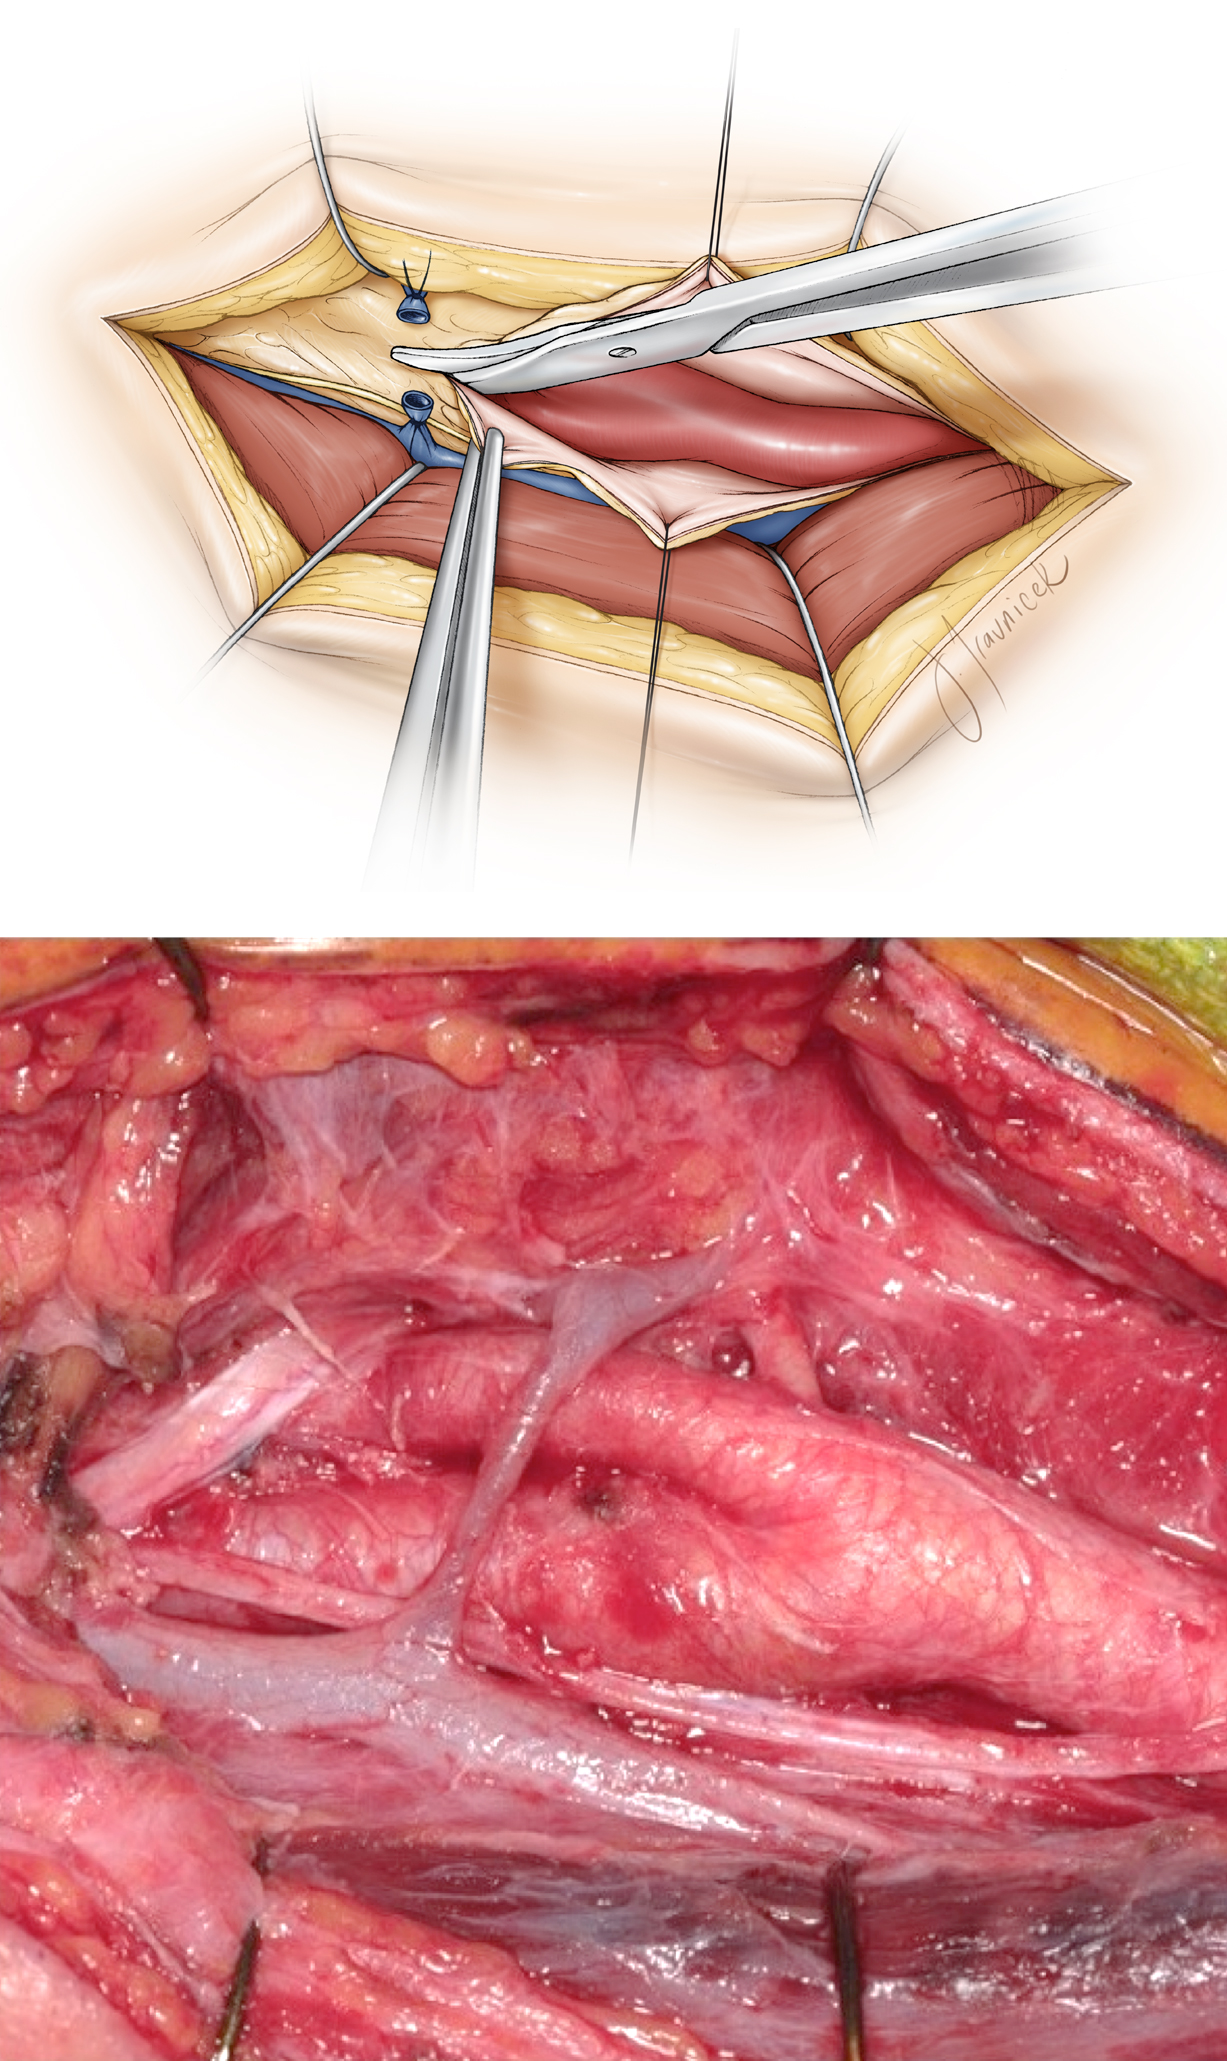 Figure 9: Division of the carotid sheath is illustrated (top image). Next, the carotid artery is dissected circumferentially free of its sheath using the continuous spreading action of a Tonsil clamp. The common facial vein, ansa cervicalis, and the hypoglossal nerve are depicted (lower photo). Preservation of the normal anatomy is the goal.